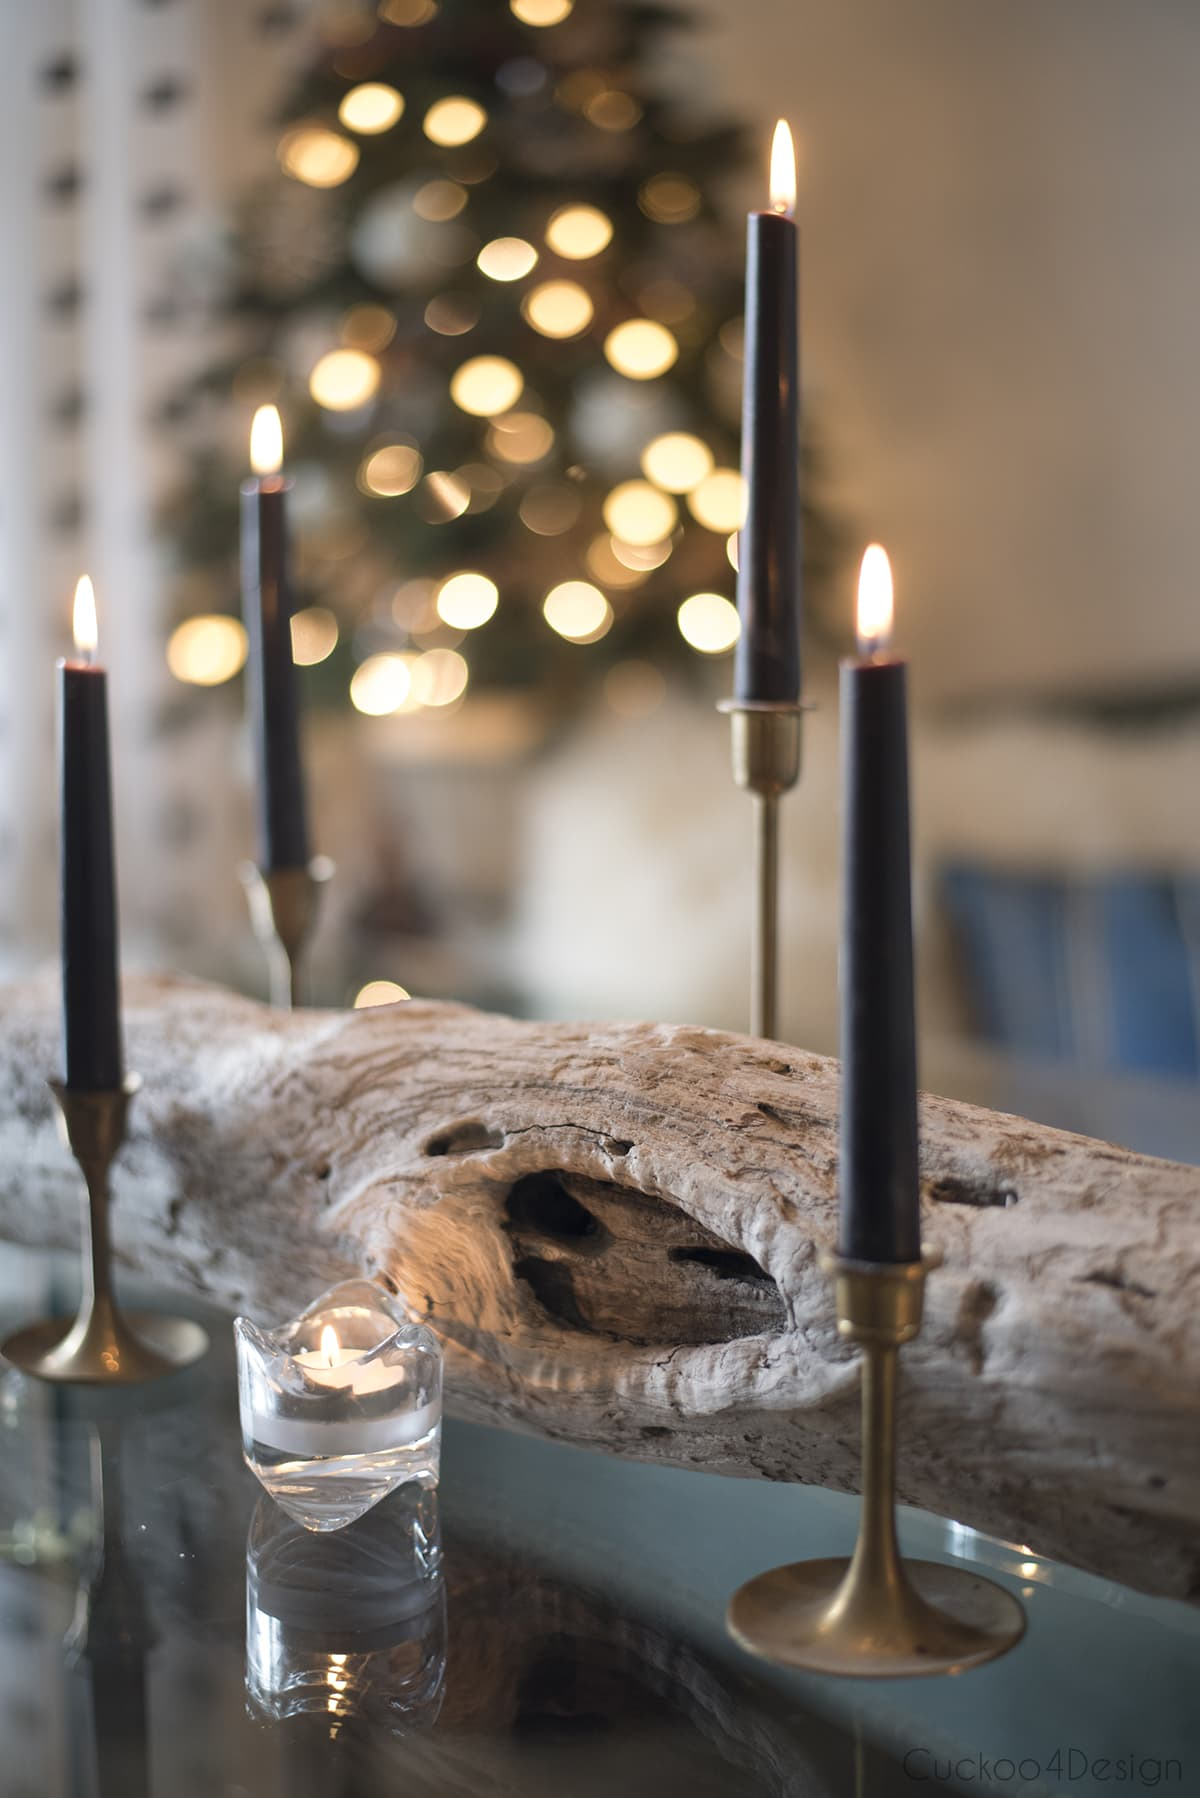 driftwood with candles as natural Christmas decorations